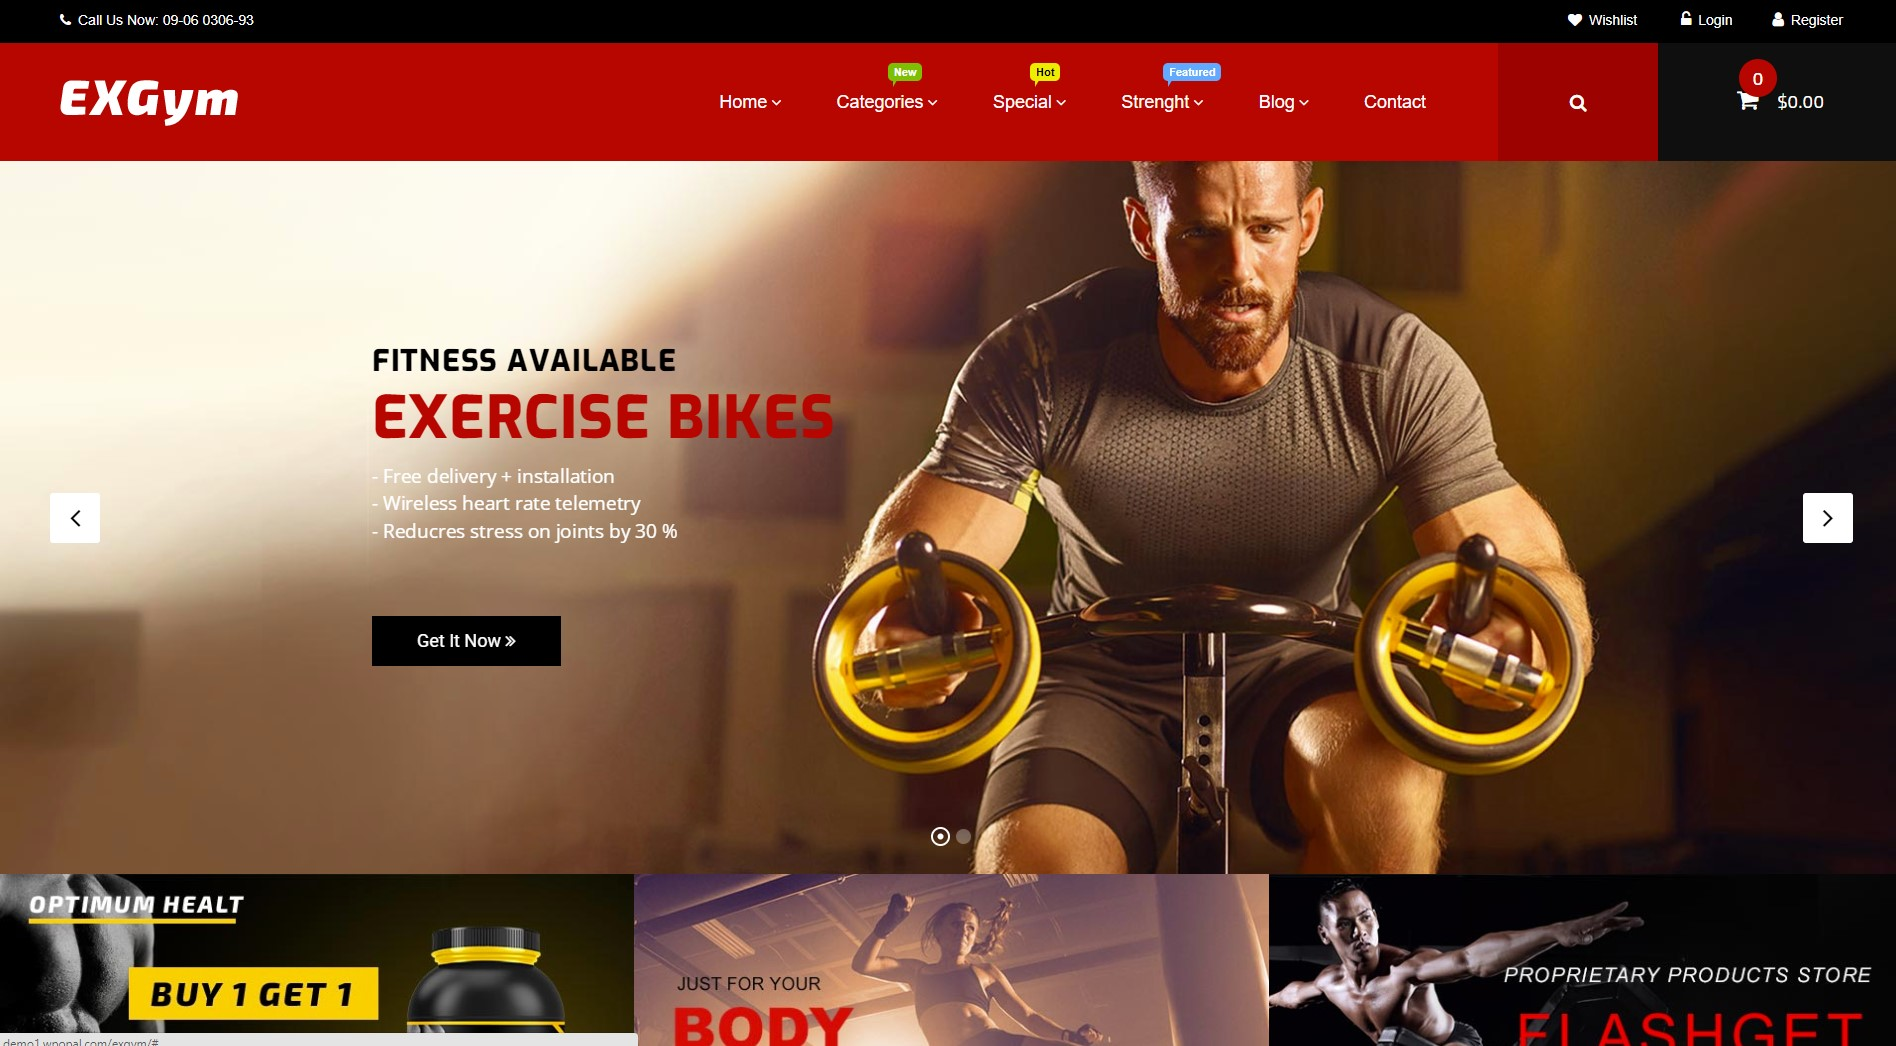 Exgym - Free Gym WordPress Theme